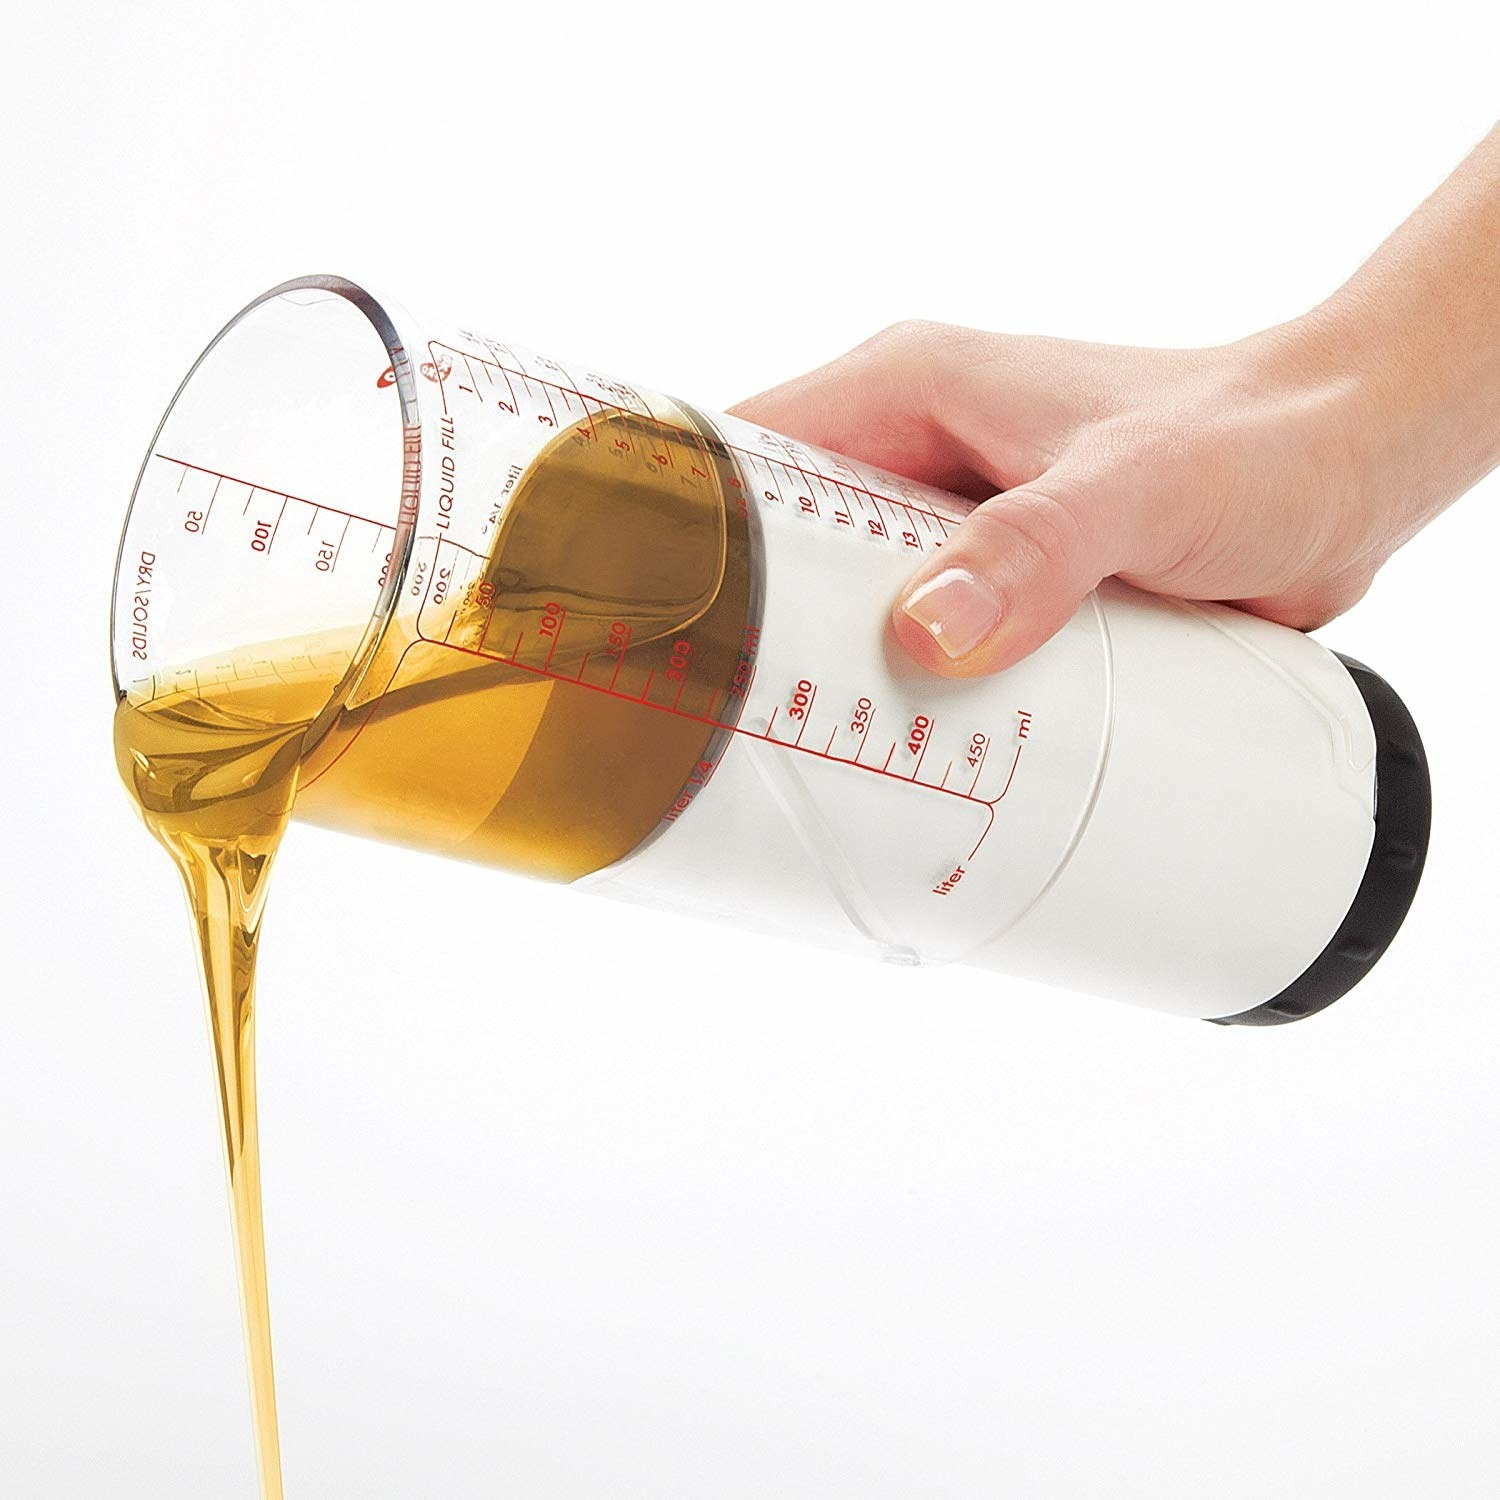 a person using the measuring cup to pour out some oil